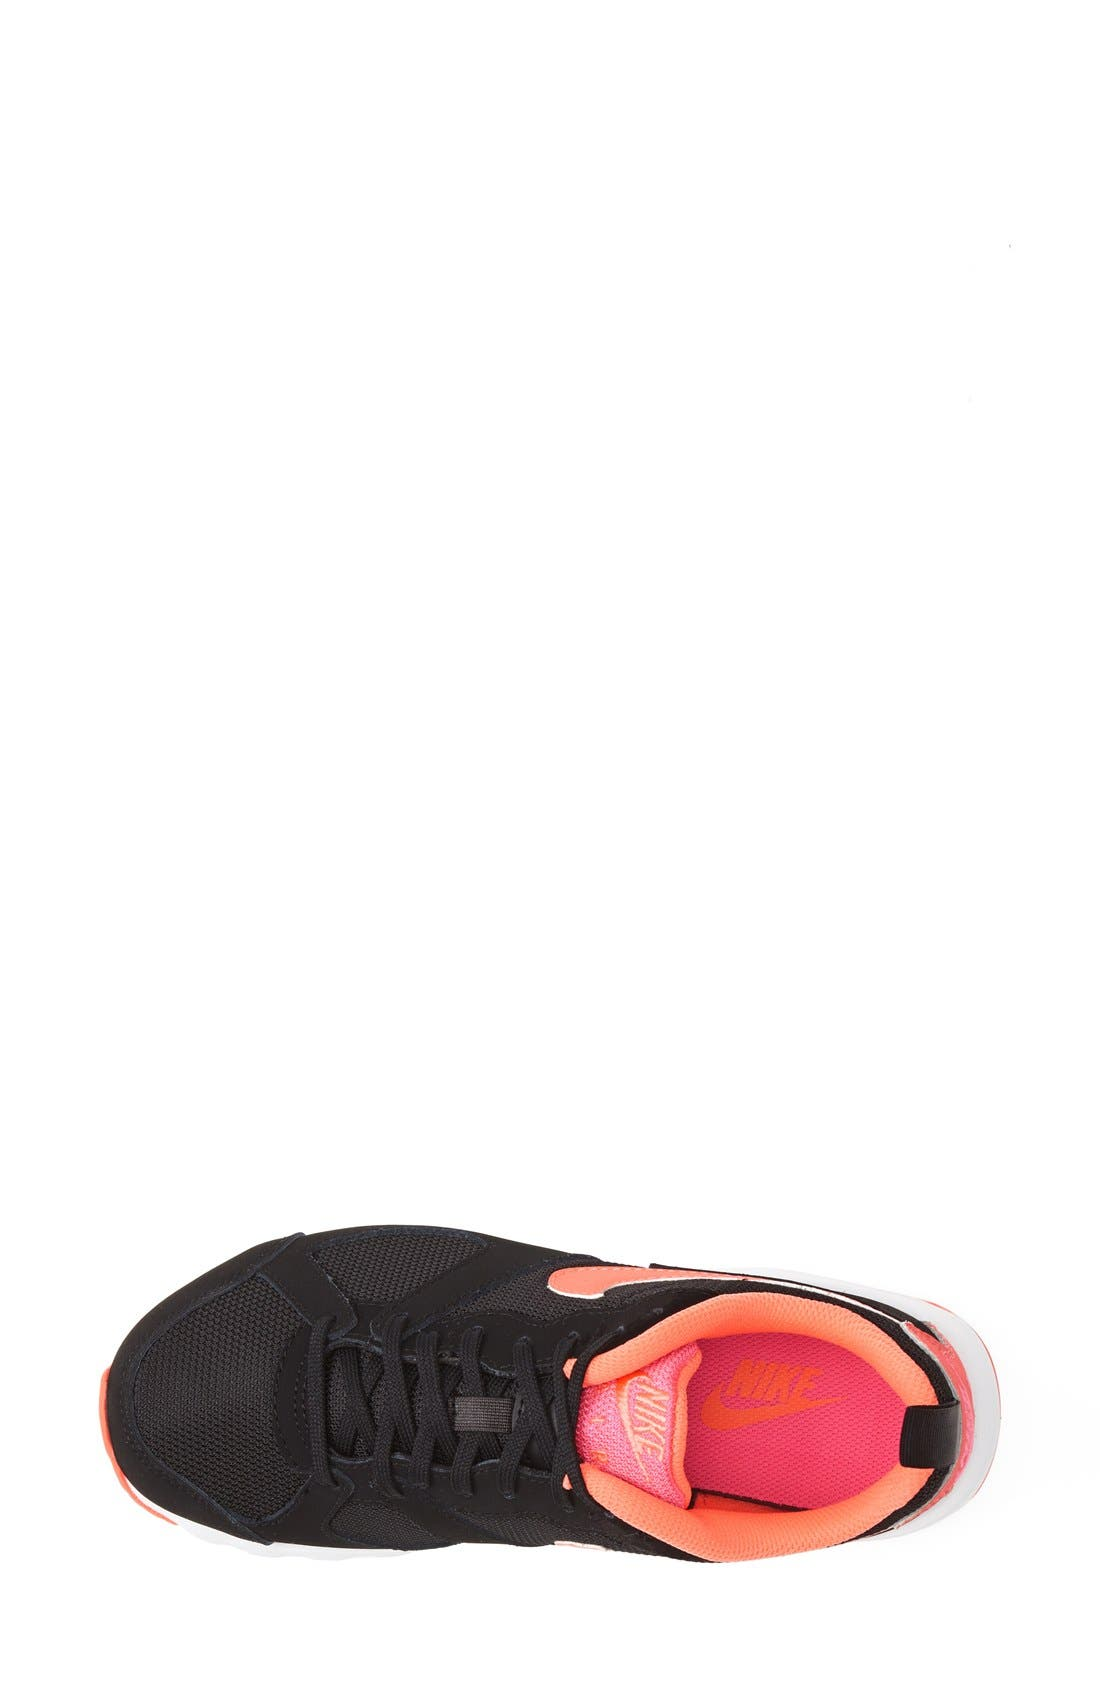 Alternate Image 3  - Nike 'Air Max - Muse' Sneaker (Women)